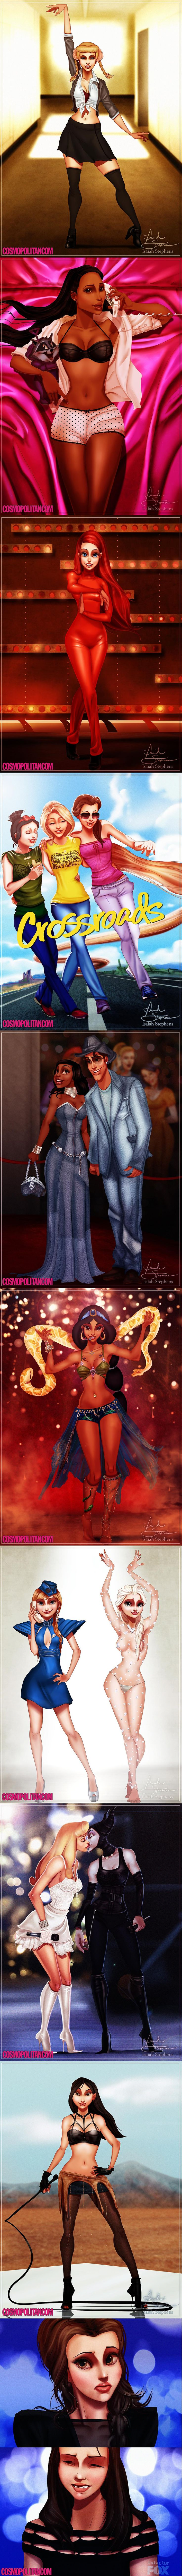 """If Disney Princesses Were Britney Spears  1. Cinderella as """"...Baby One More Time"""" Britney. 2. Pocahontas as Rolling Stone cover Britney  3. Ariel as """"Oops!...I Did It Again"""" Britney. 4. Rapunzel as Crossroads Britney (with Snow White and Belle as Taryn Manning's and Zoe Saldana's characters respectively). 5. Tiana as 2001 American Music Awards Britney (and Naveen as Justin). 6. Jasmine as 2001 Video Music Awards Britney. 7. Anna and Elsa as """"Toxic"""" Britney. 8. Sleeping Beauty as 2003 Video…"""